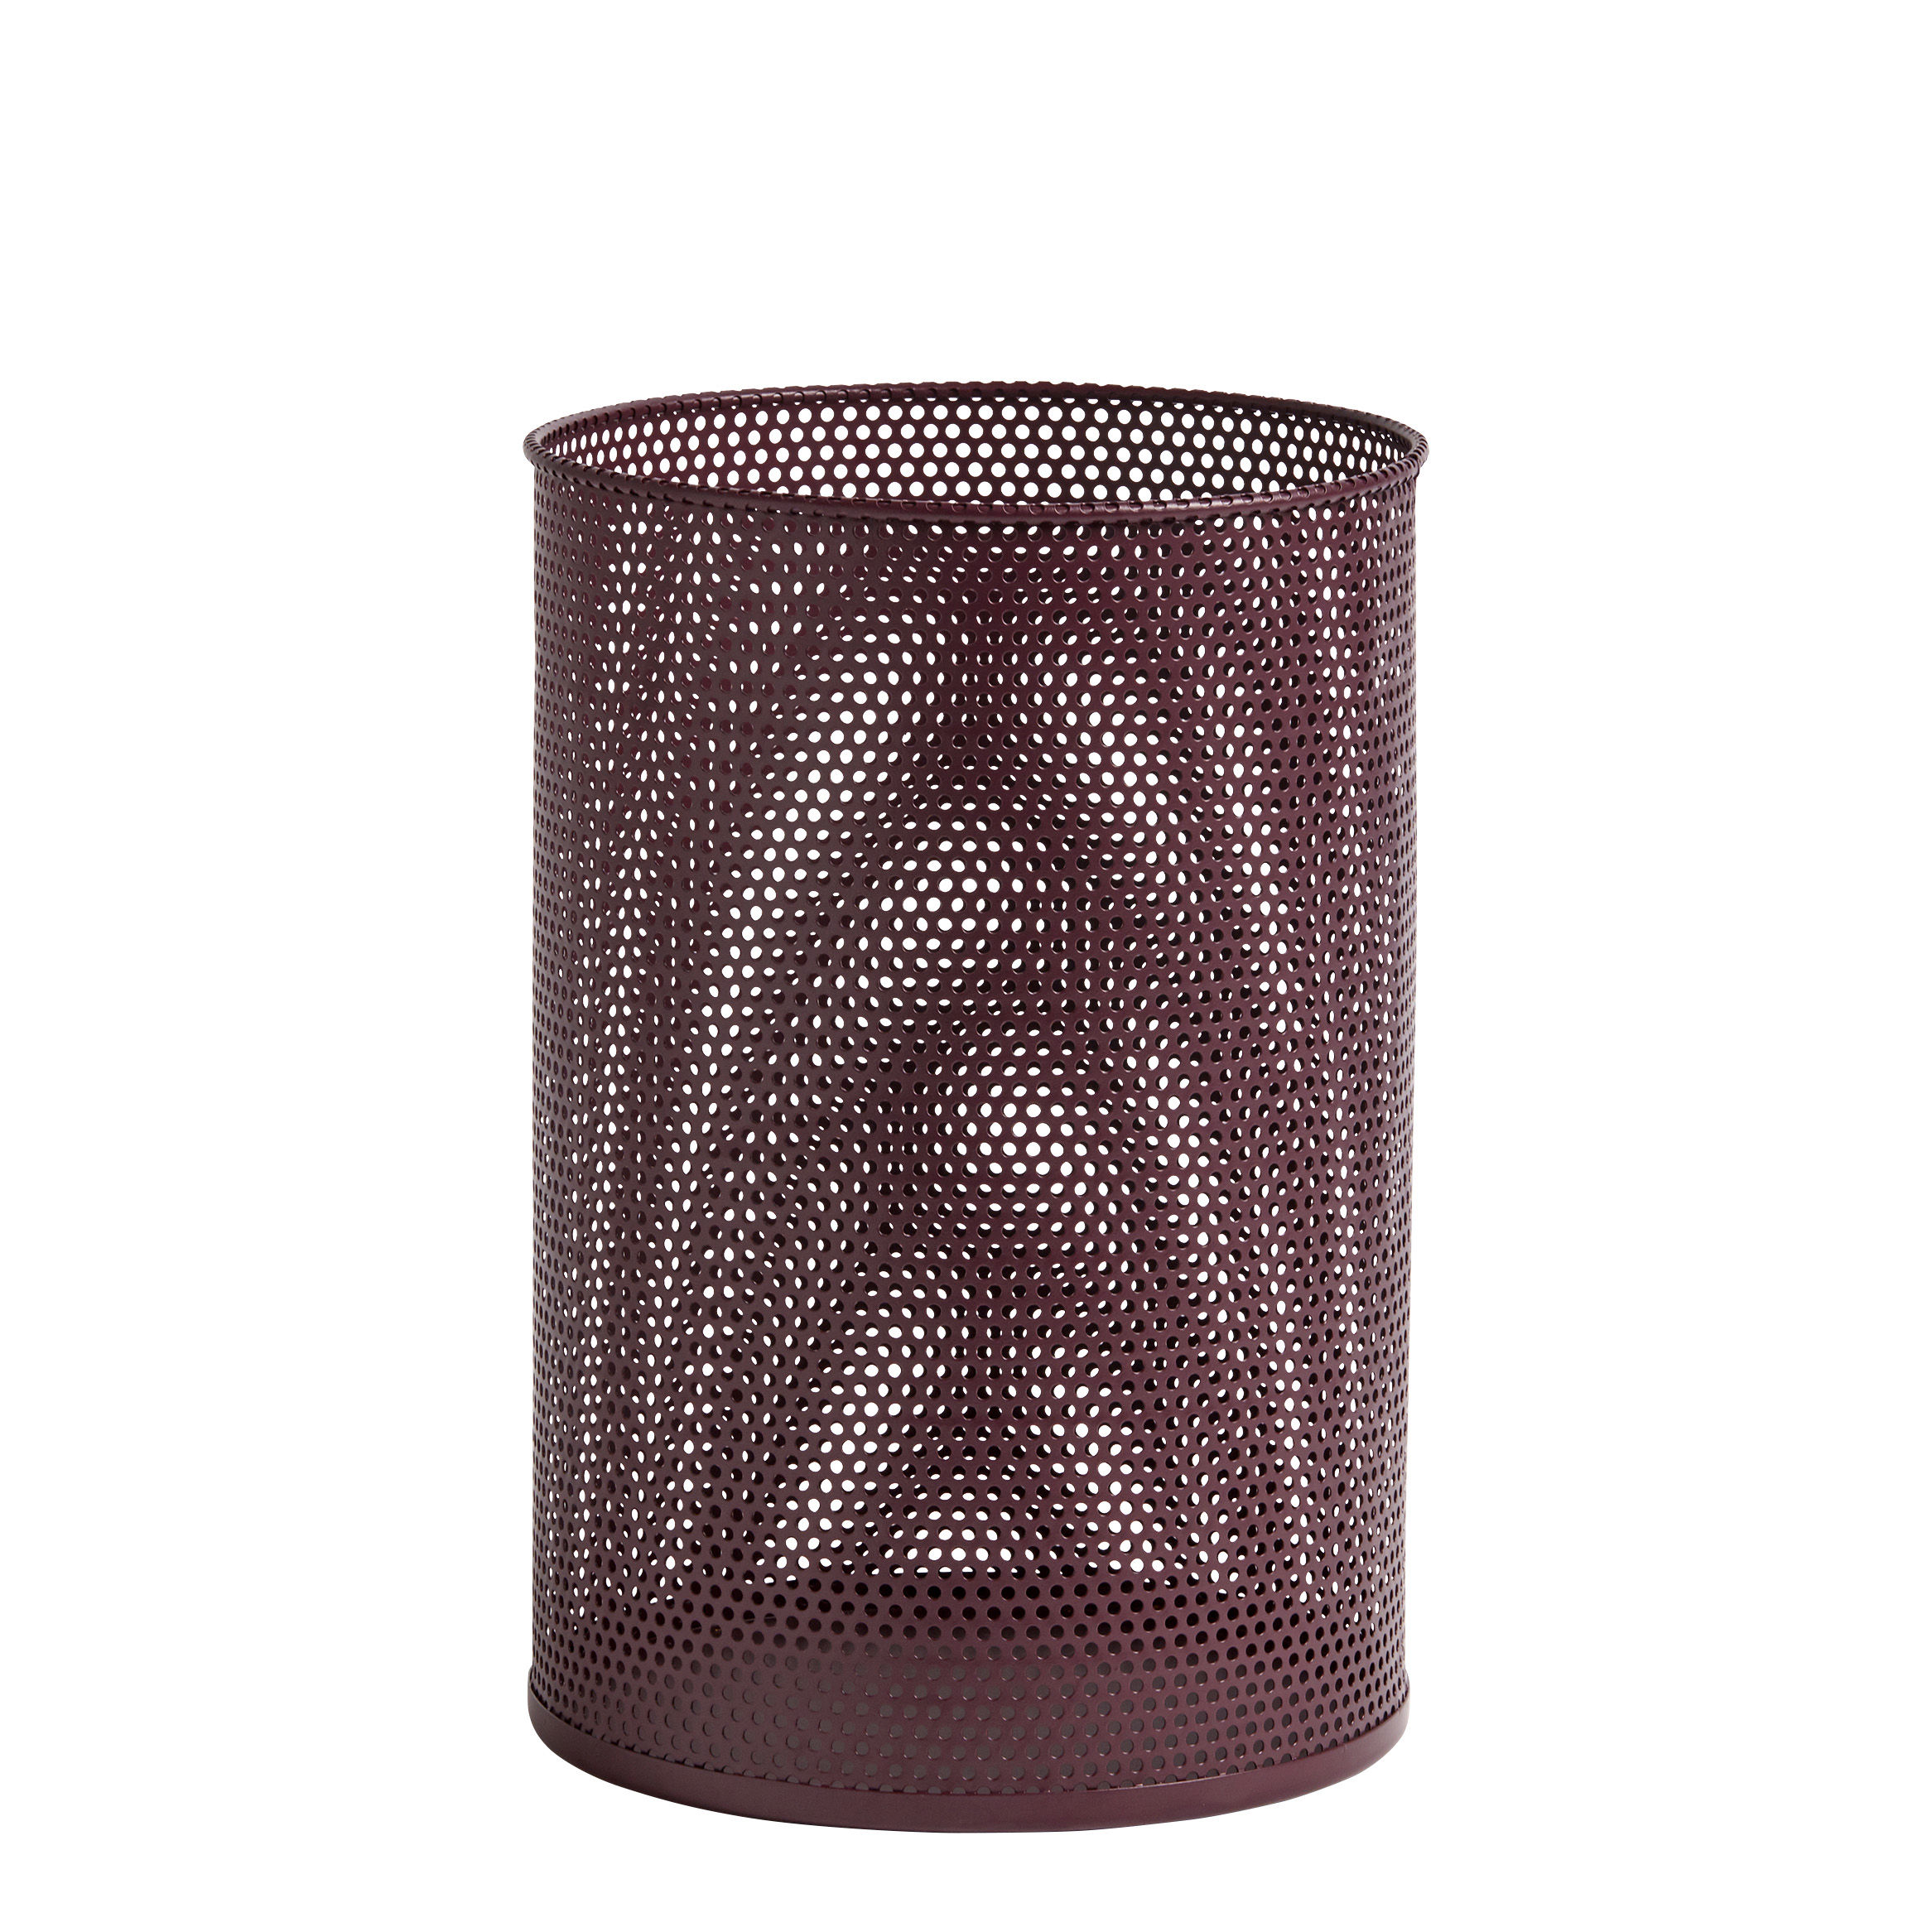 Accessories - Desk & Office Accessories - Perforated Wastepaper basket - / Perforated metal by Hay - Red - Fer perforé